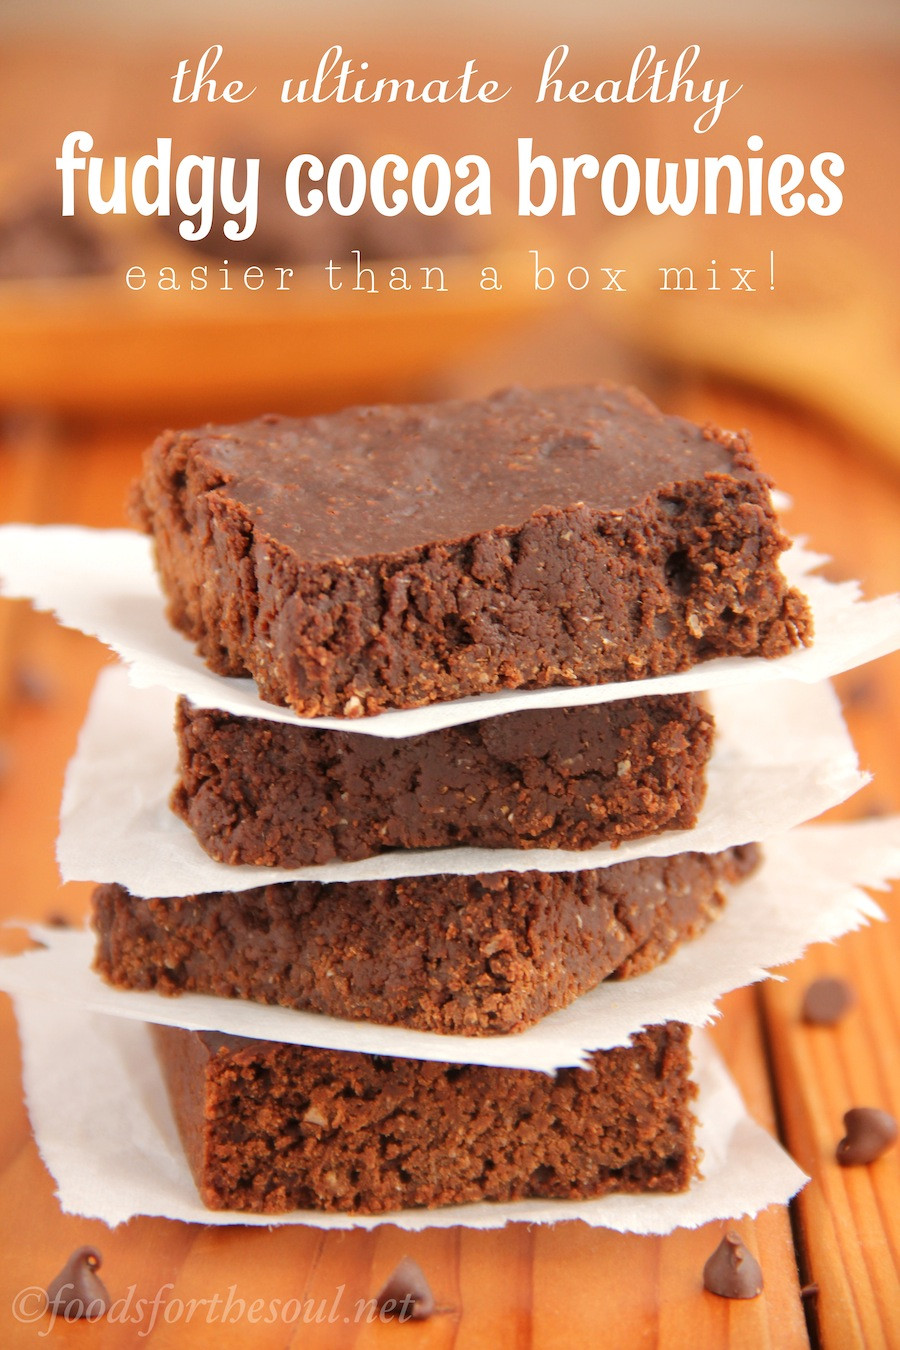 Healthy Cocoa Powder Recipes  The Ultimate Healthy Fudgy Cocoa Brownies